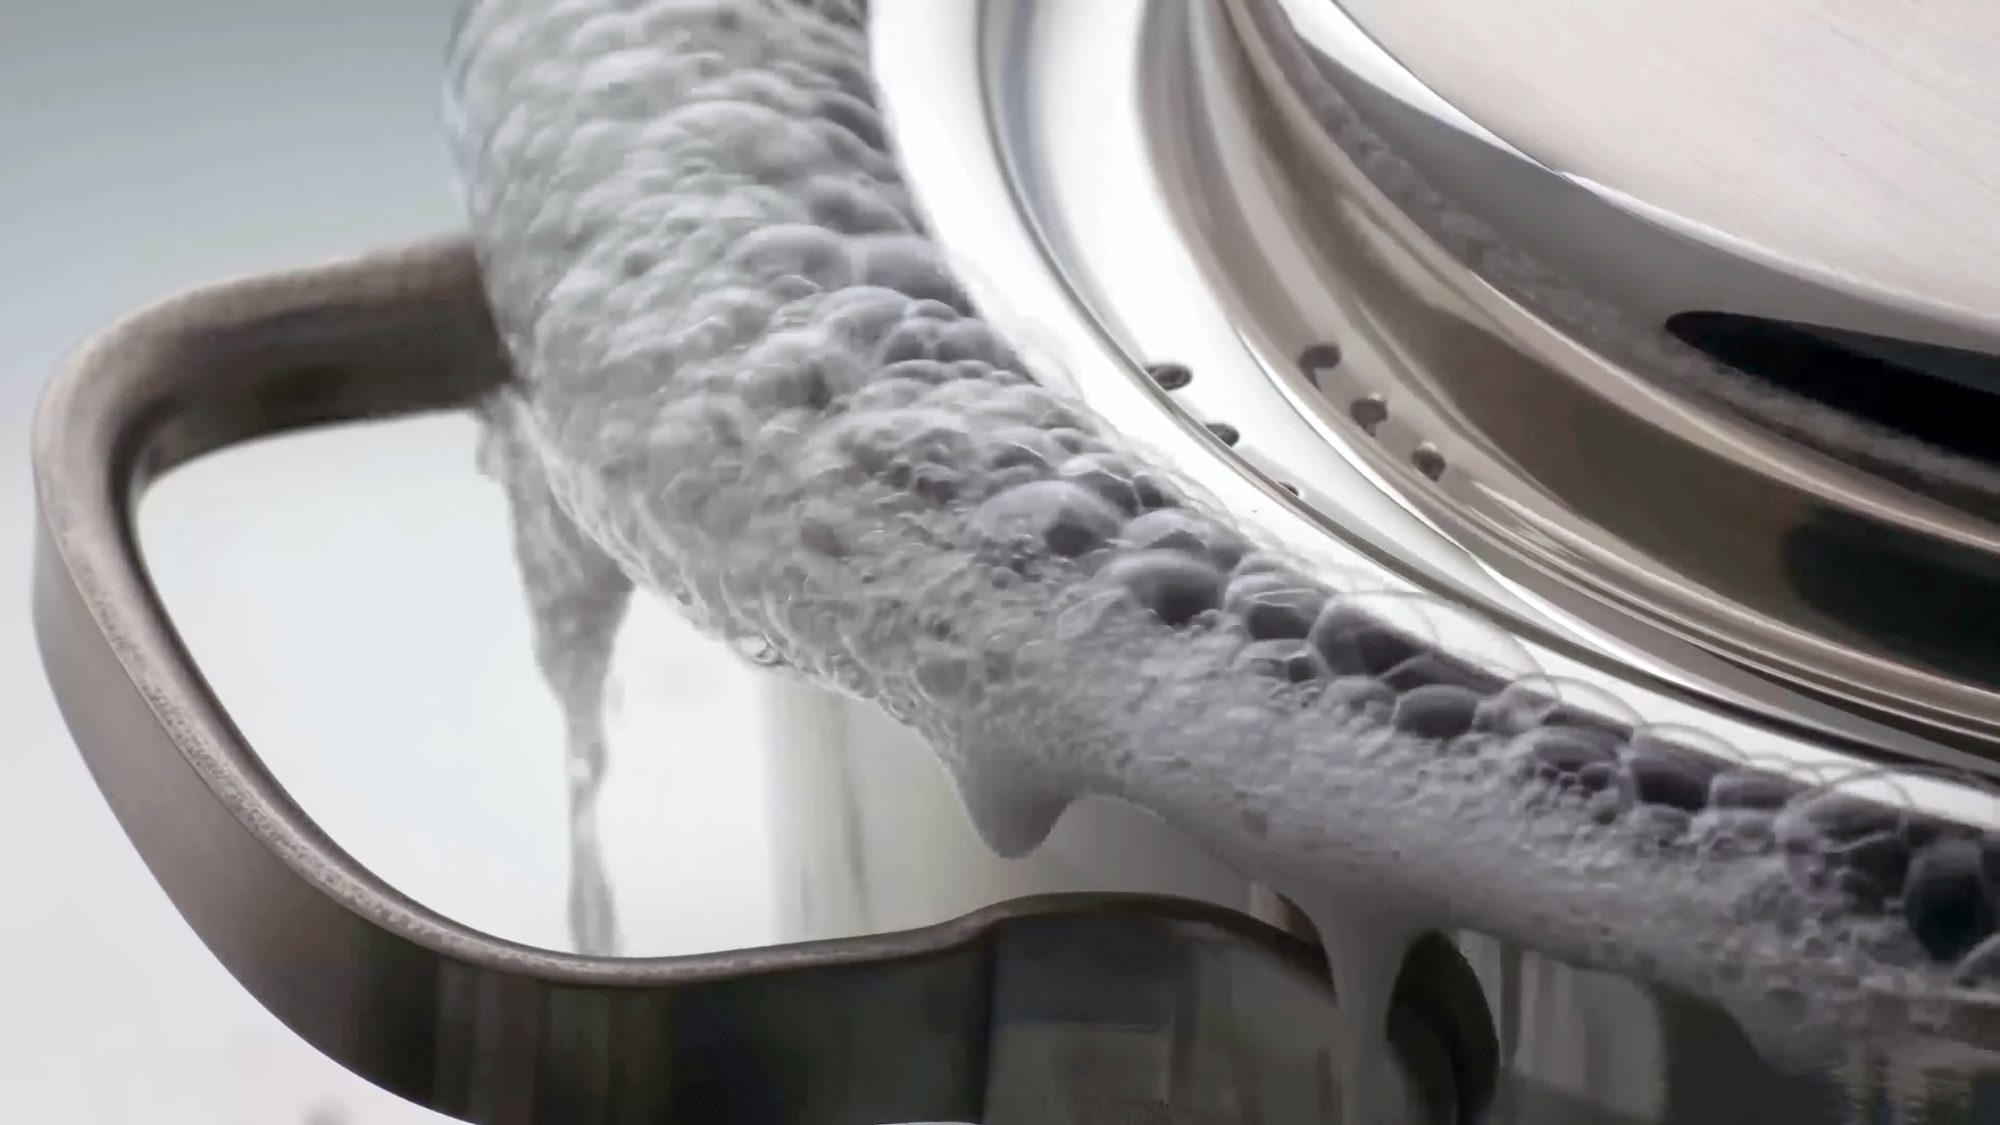 Water boiling over from a saucepan with lid. Pot boiling over. close up